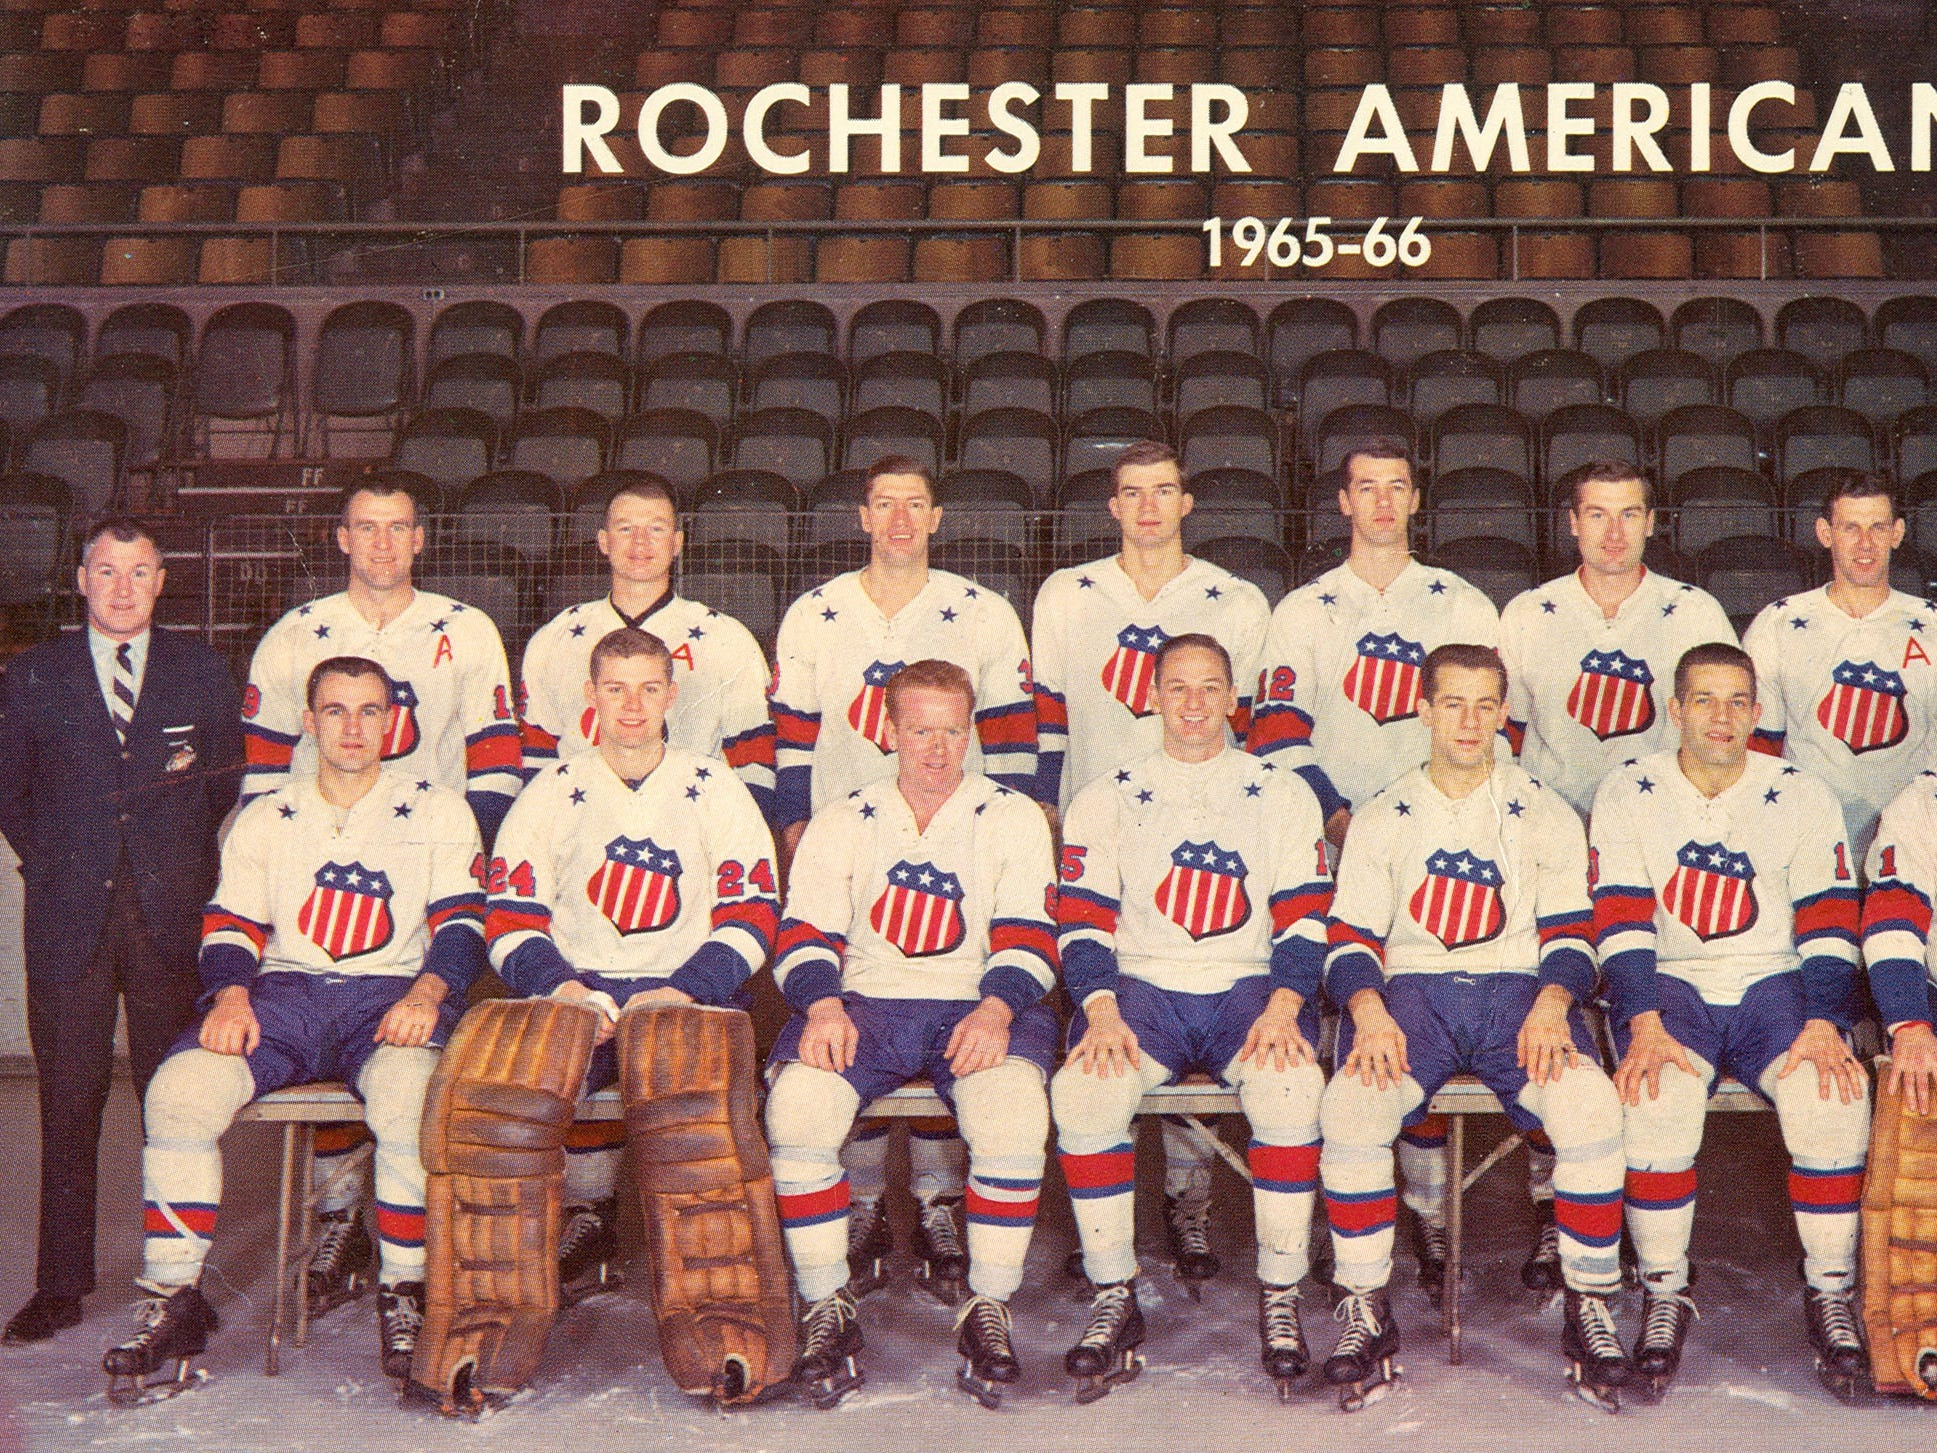 """The 1965-66 Rochester Americans were coached by Joe Crozier, back left, and won the Calder Cup championship. The team, front, from left: Darryl Sly, Gary Smith, Norm """"Red"""" Armstrong, Jim Lappin, Larry Jeffrey, Stan Smrke, Bobby Perreault, Mike Walton, Ken Carson (trainer). Second row: Joe Crozier (coach and GM), Gerry Ehman (assistant captain), Don Cherry (assistant captain), Al Arbour, Brian Conacher, Ed Litzenberger, Duane Rupp, Dick Gamble (assistant captain), Bronco Horvath, Dave Faunce (publicity director)."""